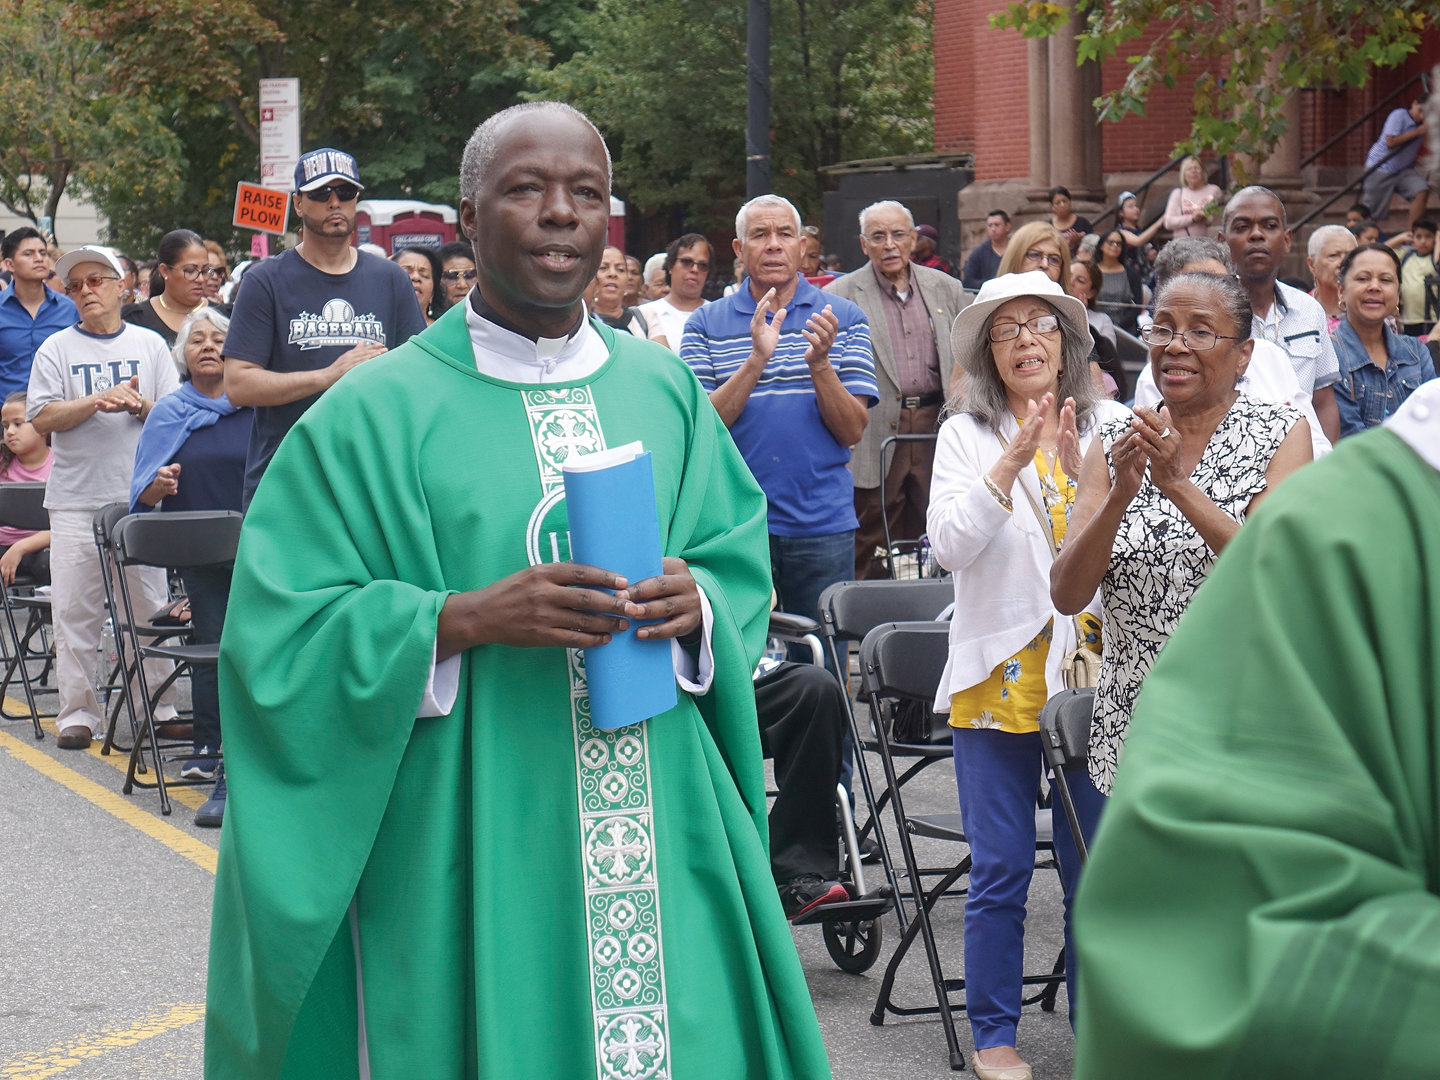 Father Peter Mushi, A.J., pastor, served as the principal celebrant for St. Cecilia and Holy Agony's annual Street Mass on 106th Street between Park and Lexington avenues in East Harlem Sept. 8.